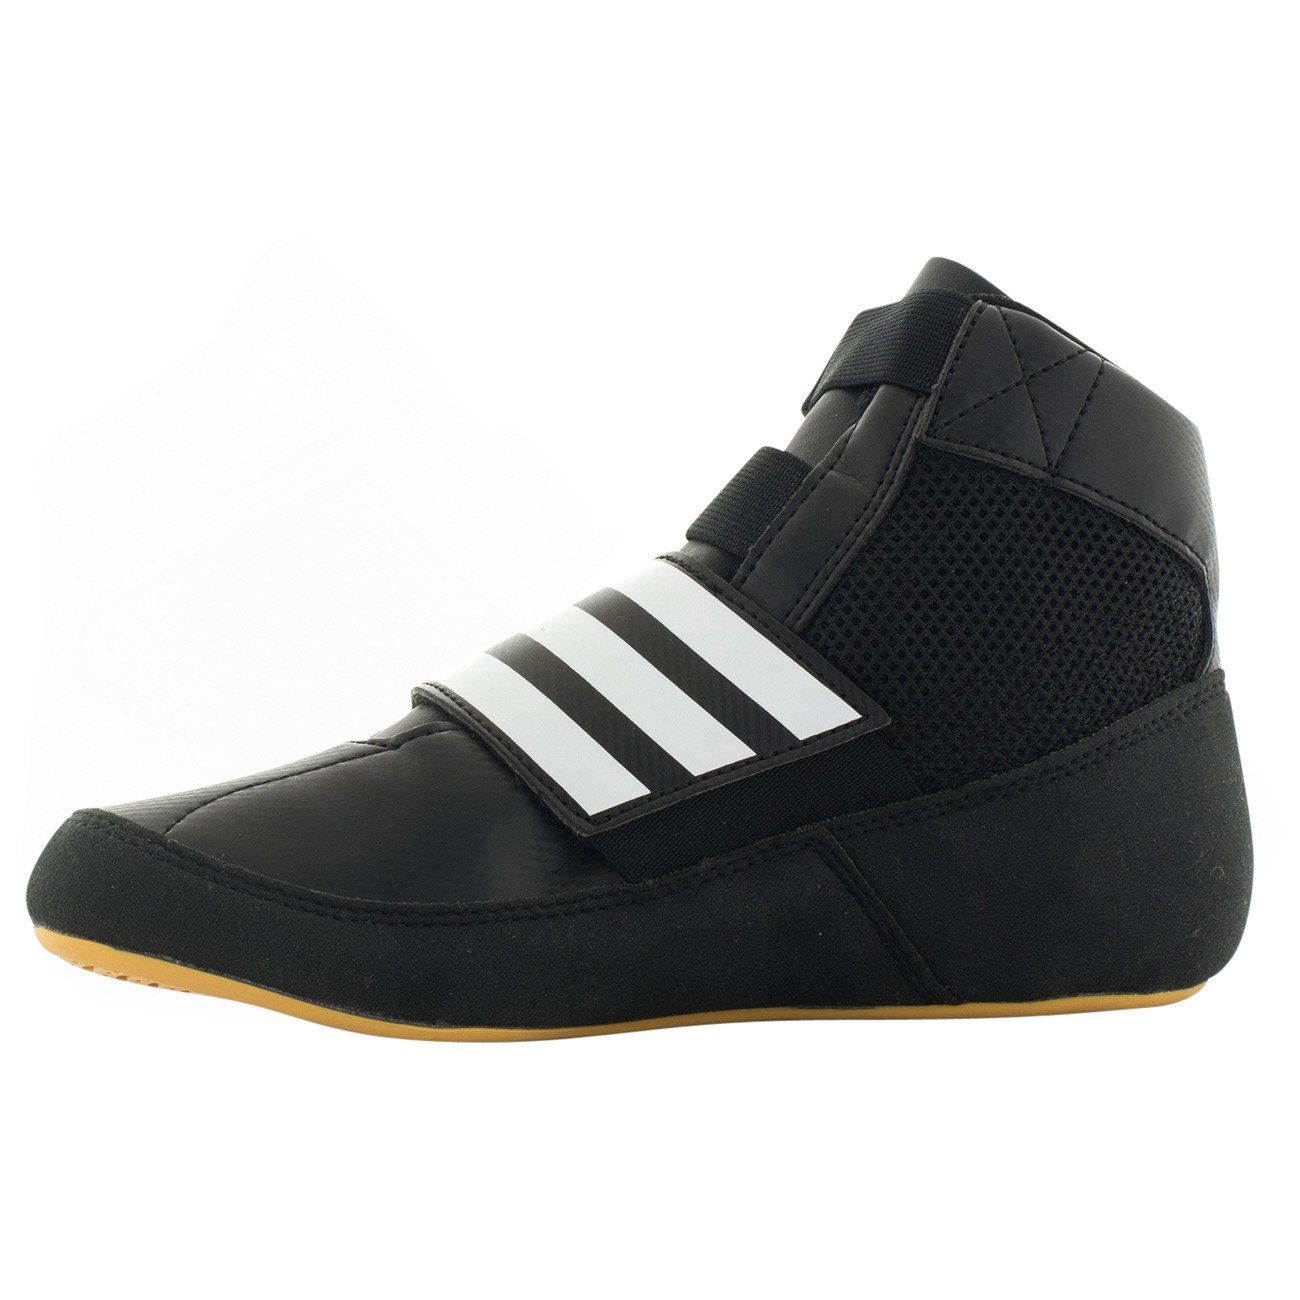 Discontinued Adidas Wrestling Shoes